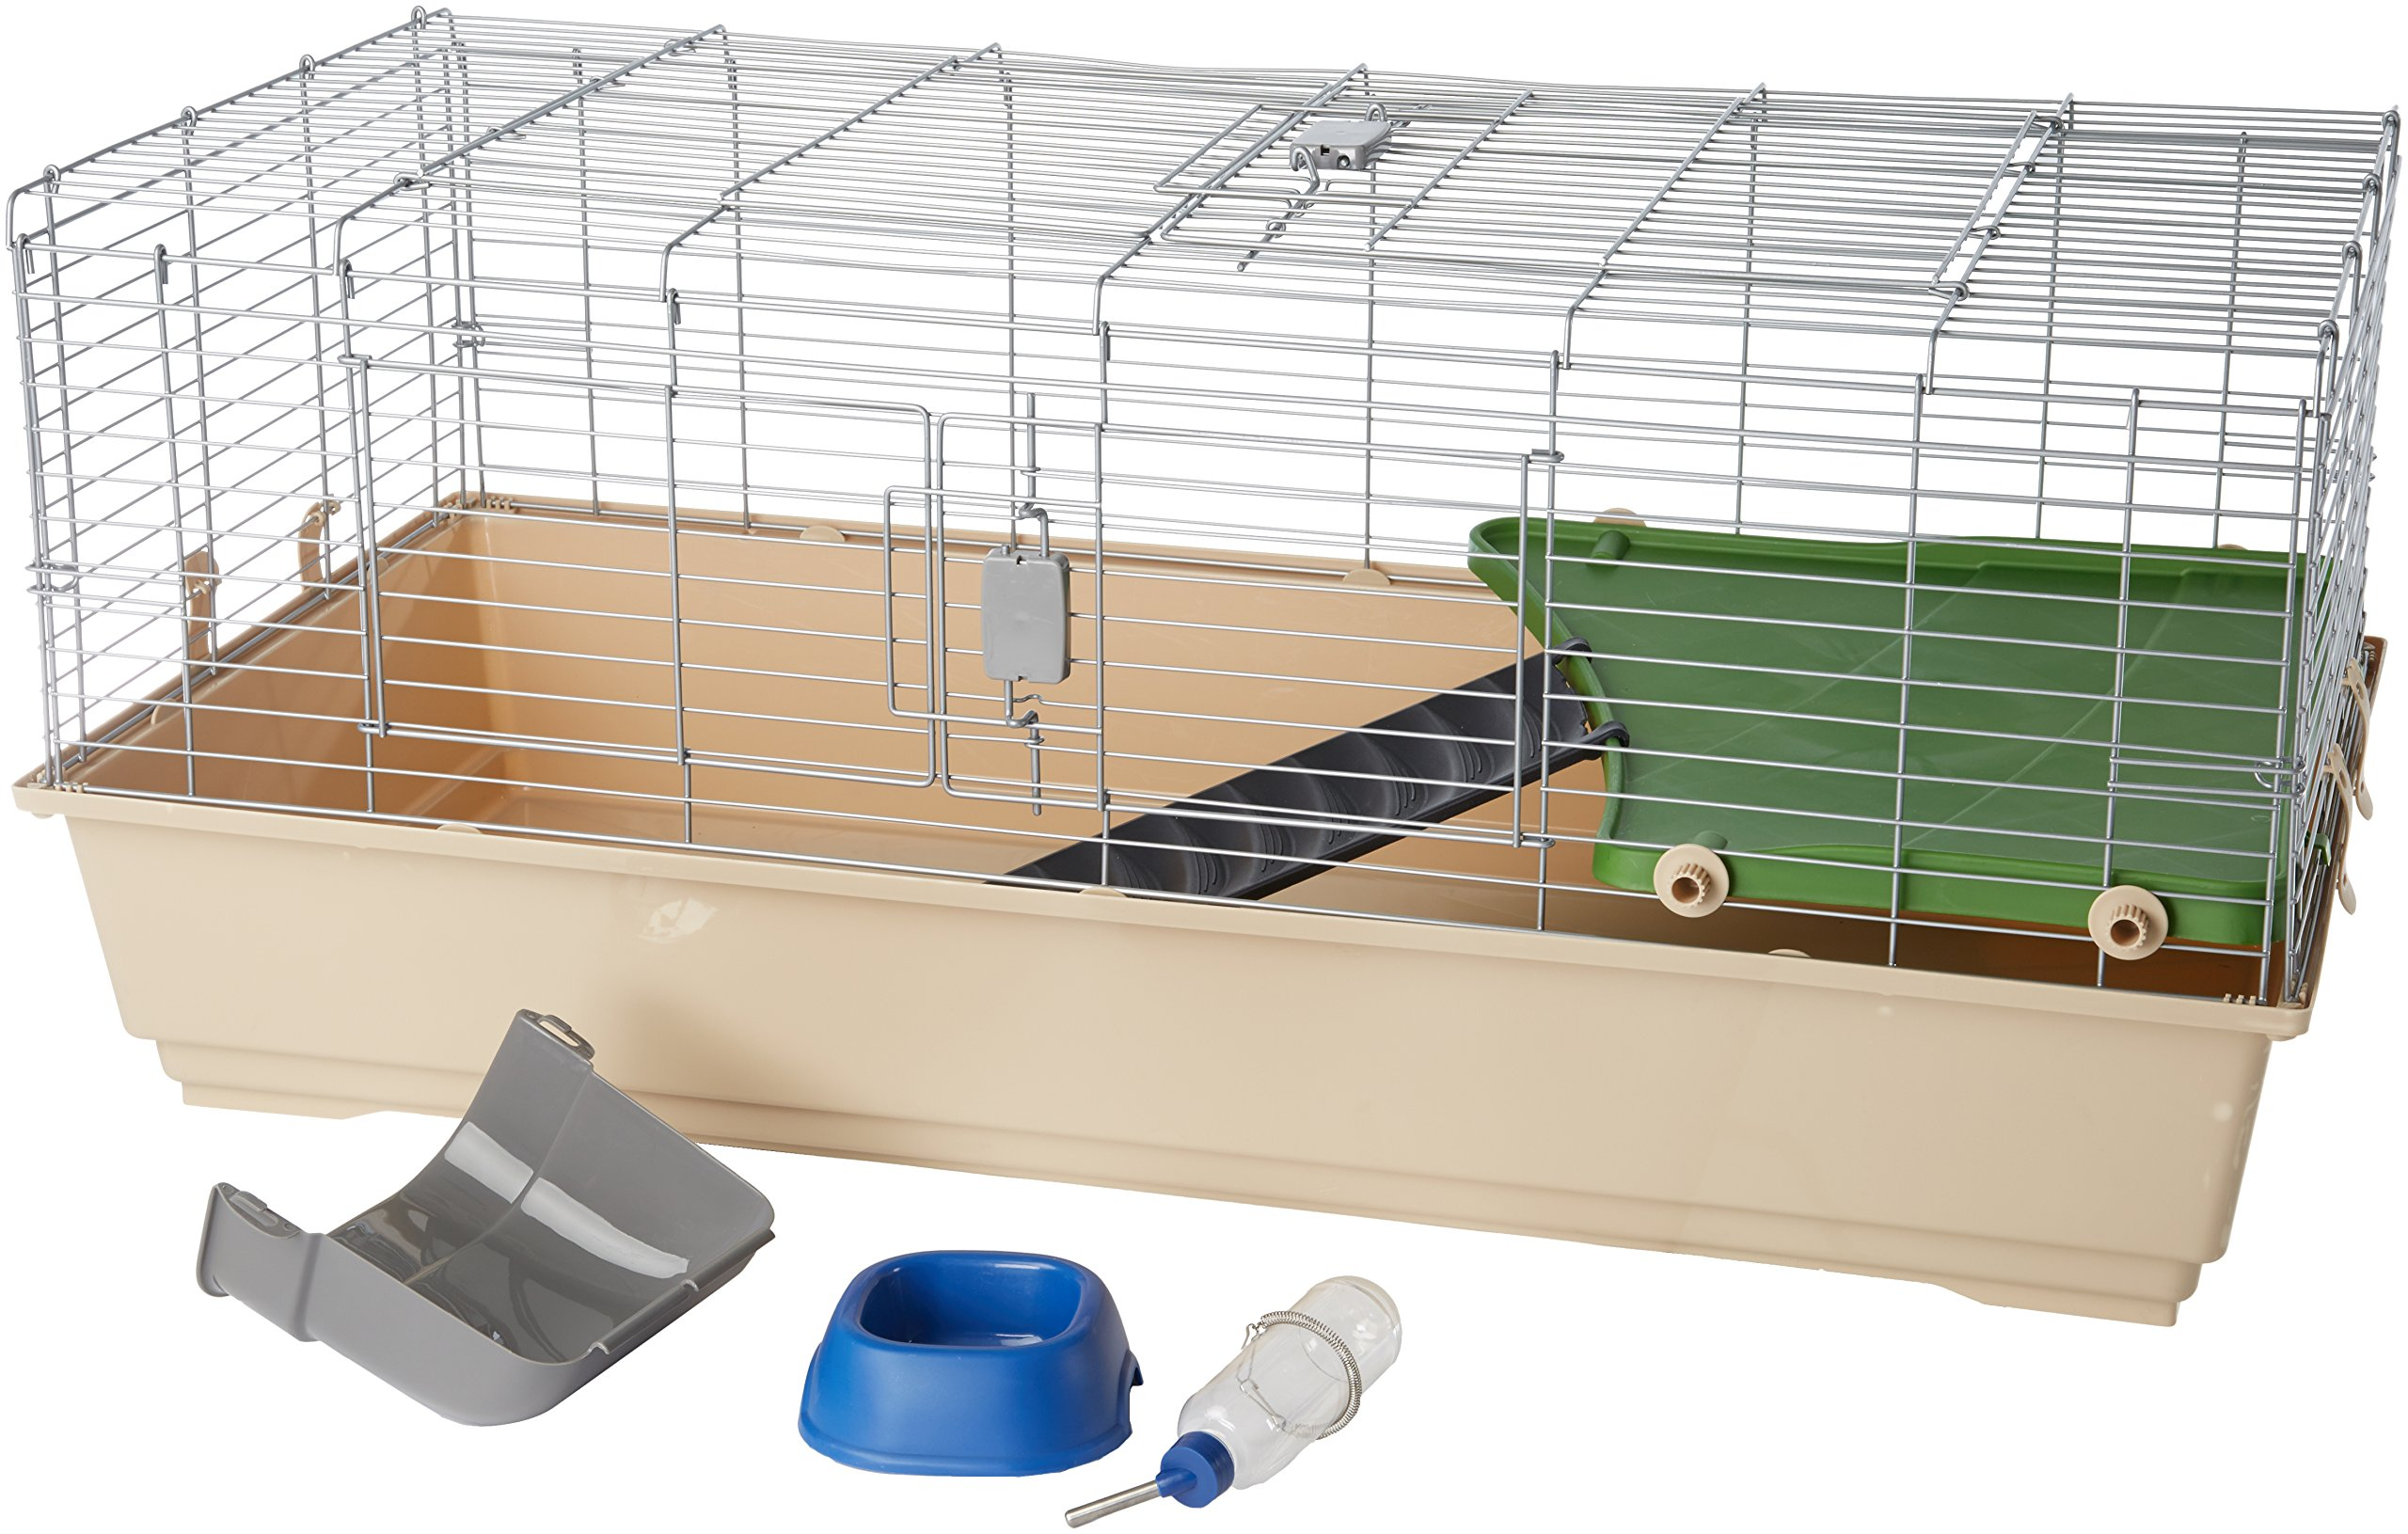 AmazonBasics Small Animal Cage Habitat With Accessories 2